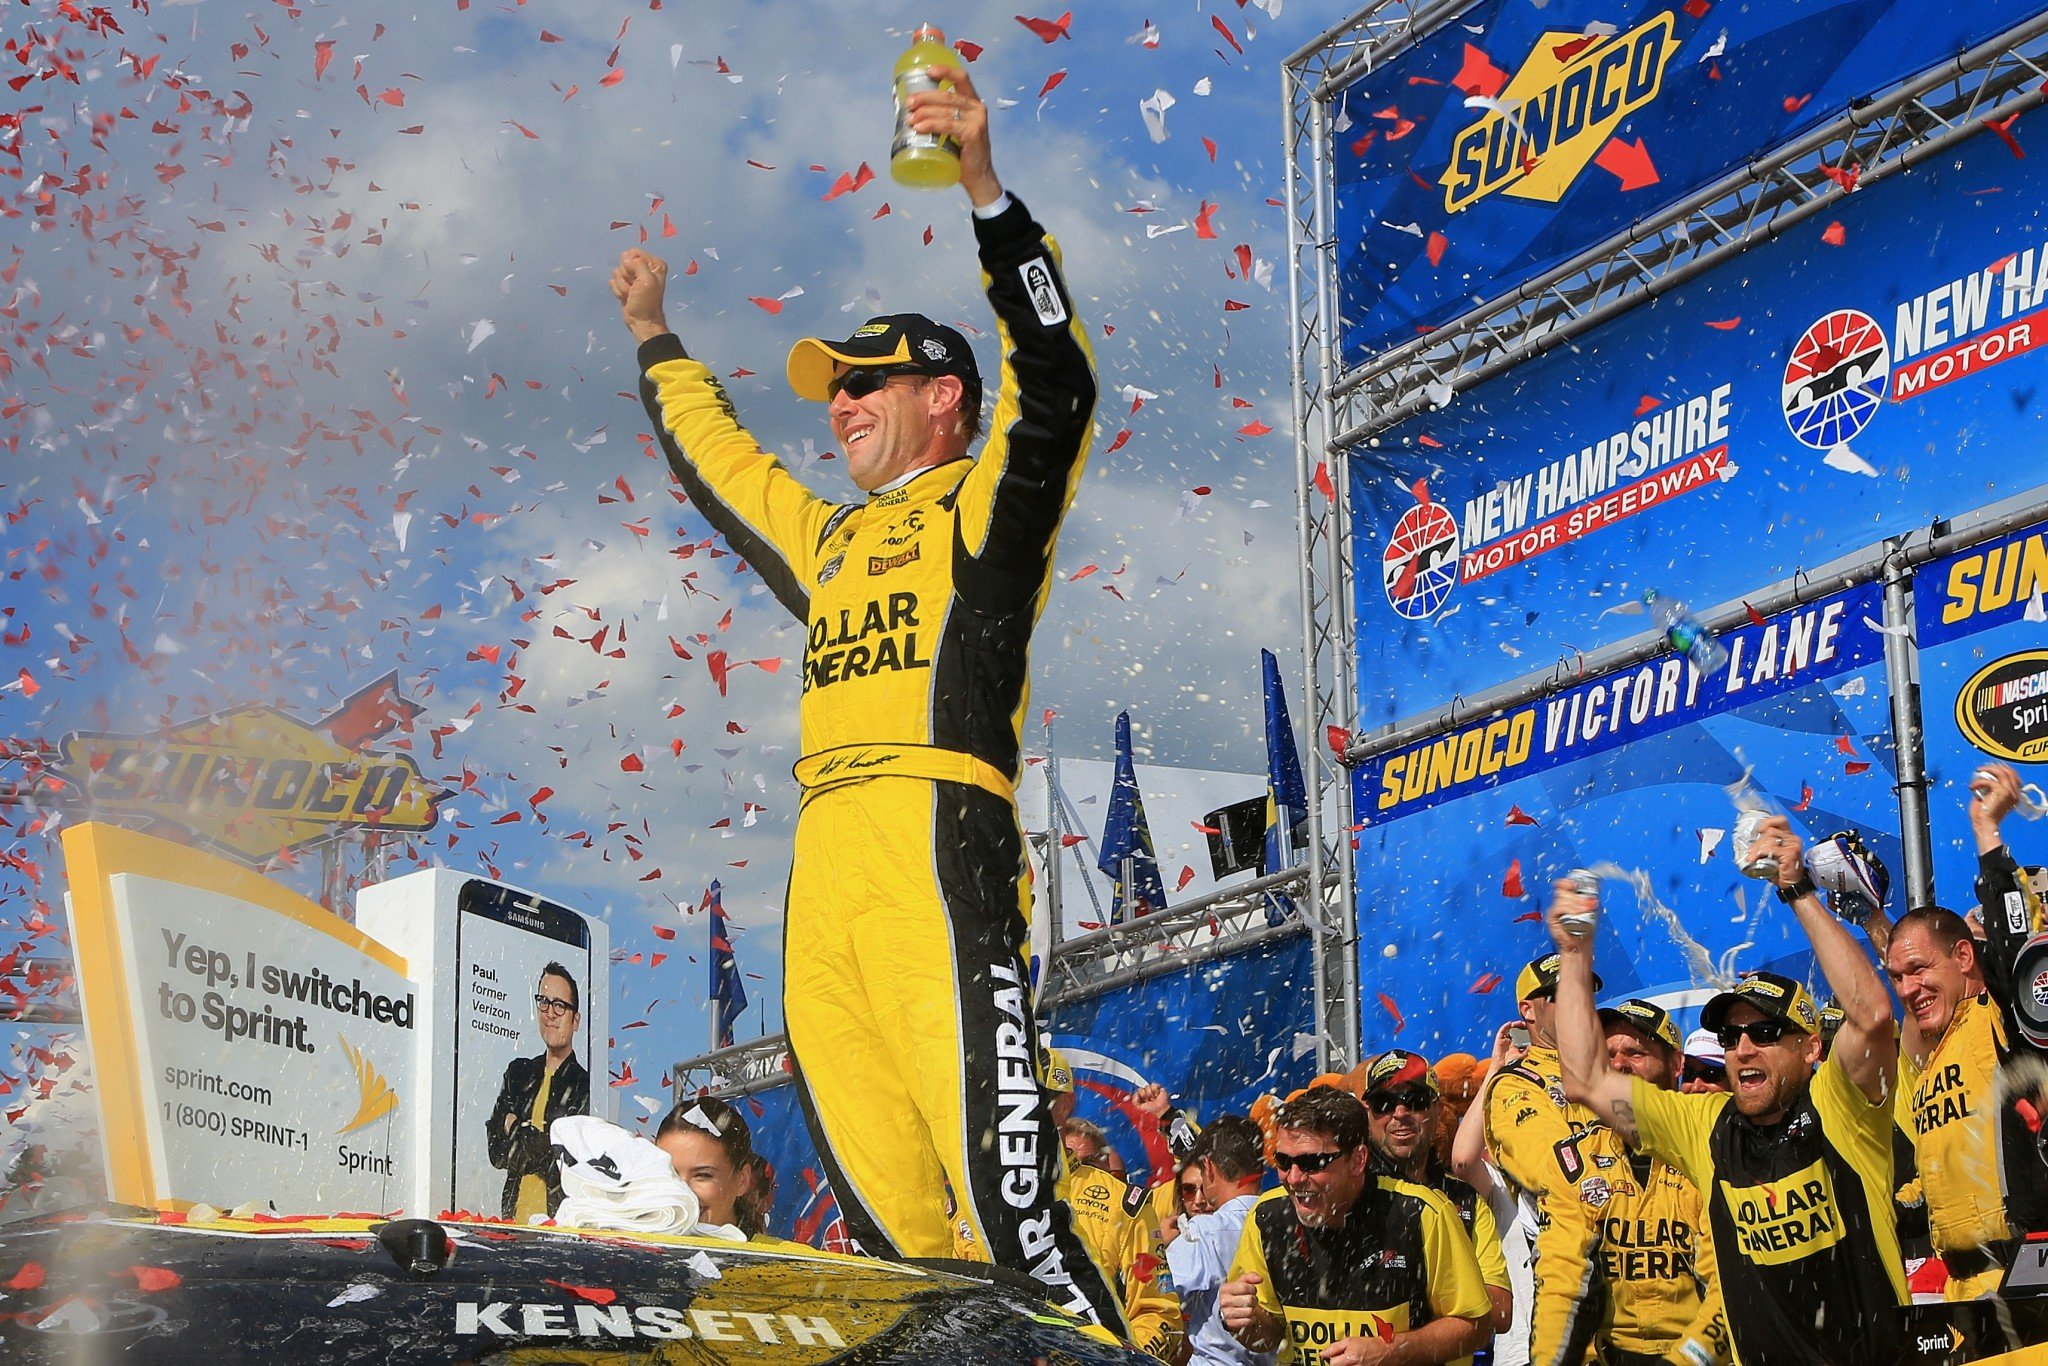 Kenseth avoids the late-race chaos, wins in New Hampshire